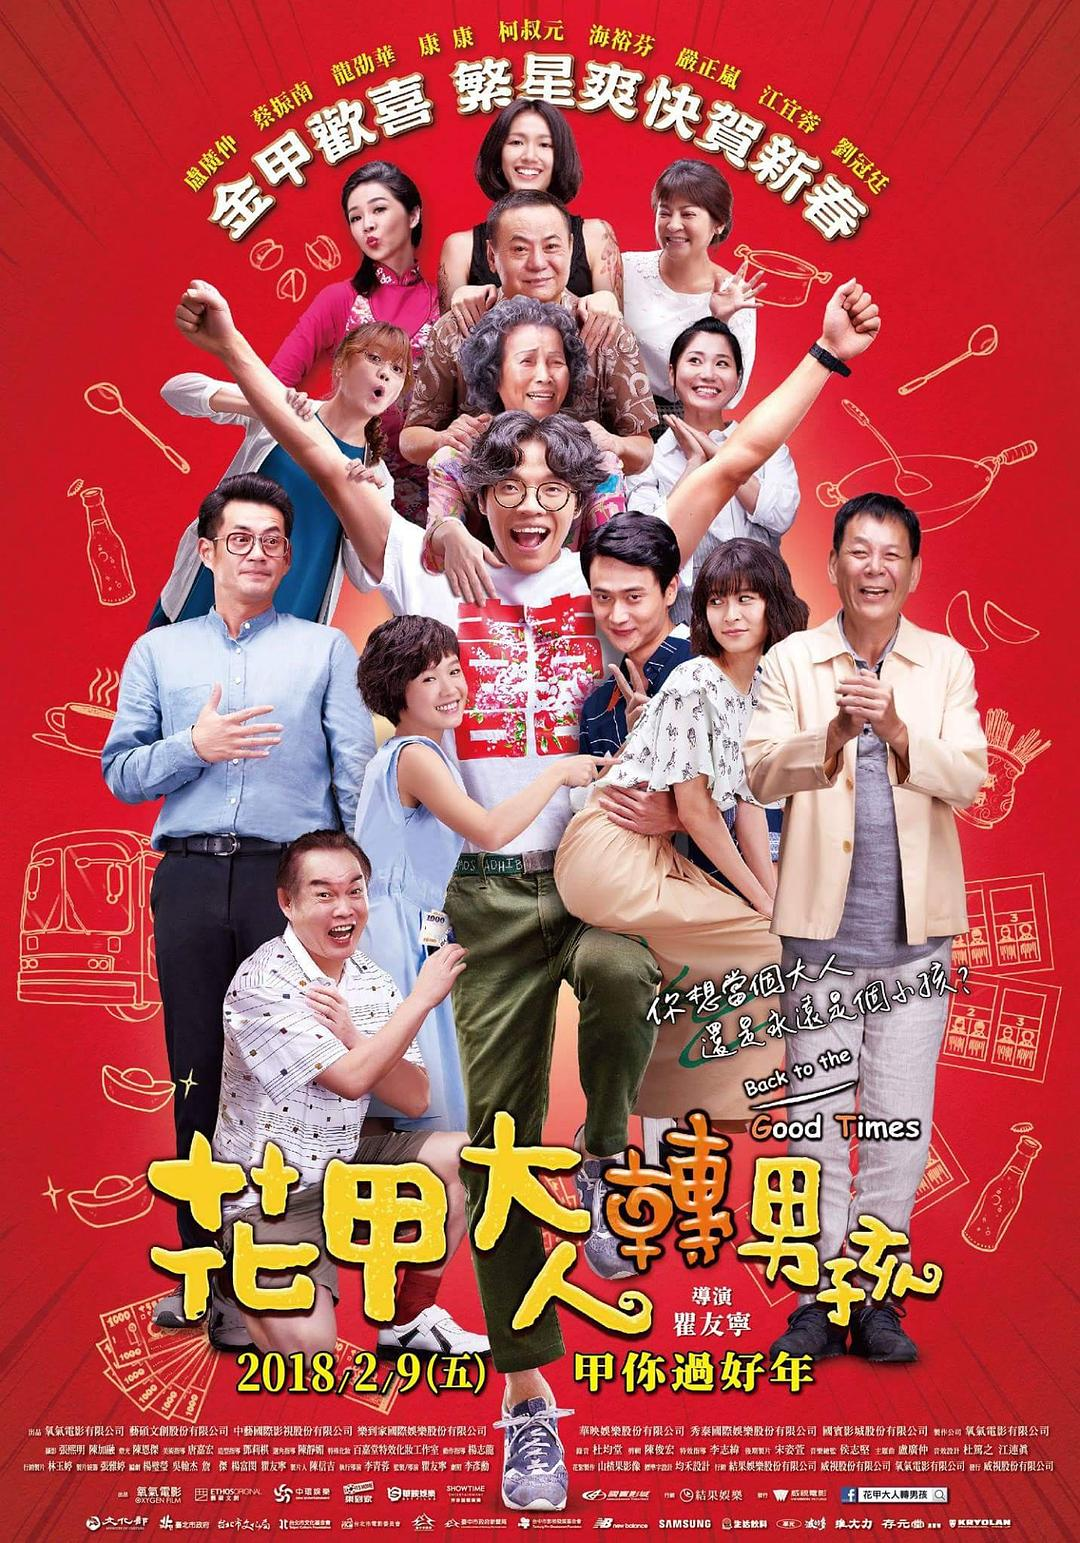 悠悠MP4_MP4电影下载_花甲大人轉男孩 Back.To.The.Good.Times.2018.CHINESE.1080p.BluRay.x264.DTS-WiKi 10.99GB